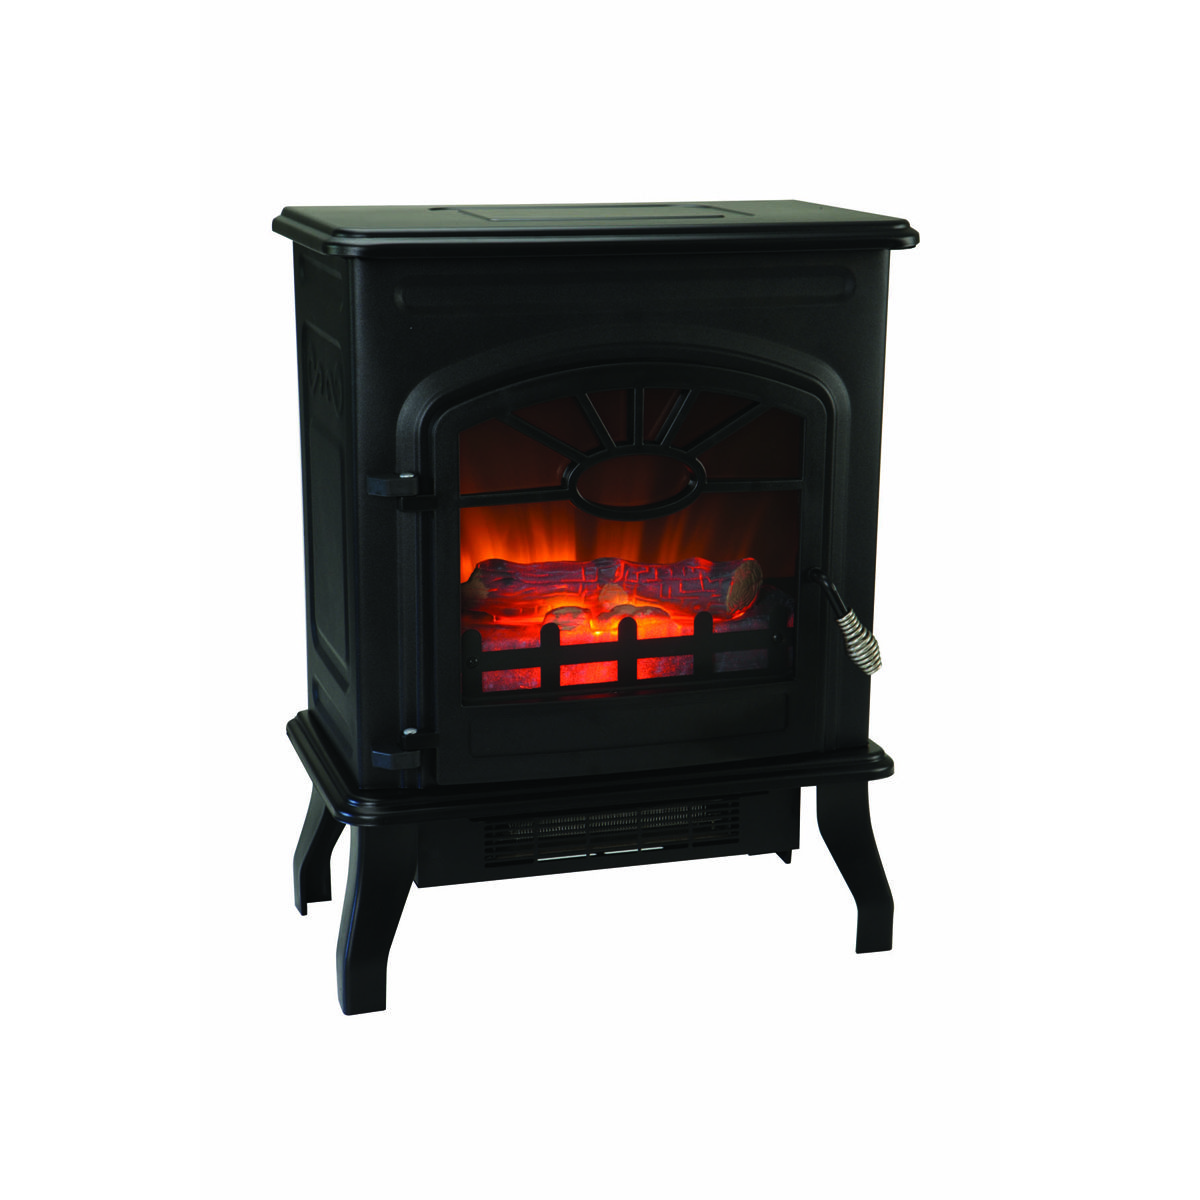 750 1500 Watt Wood Stove Style Electric Heater In 2020 Wood